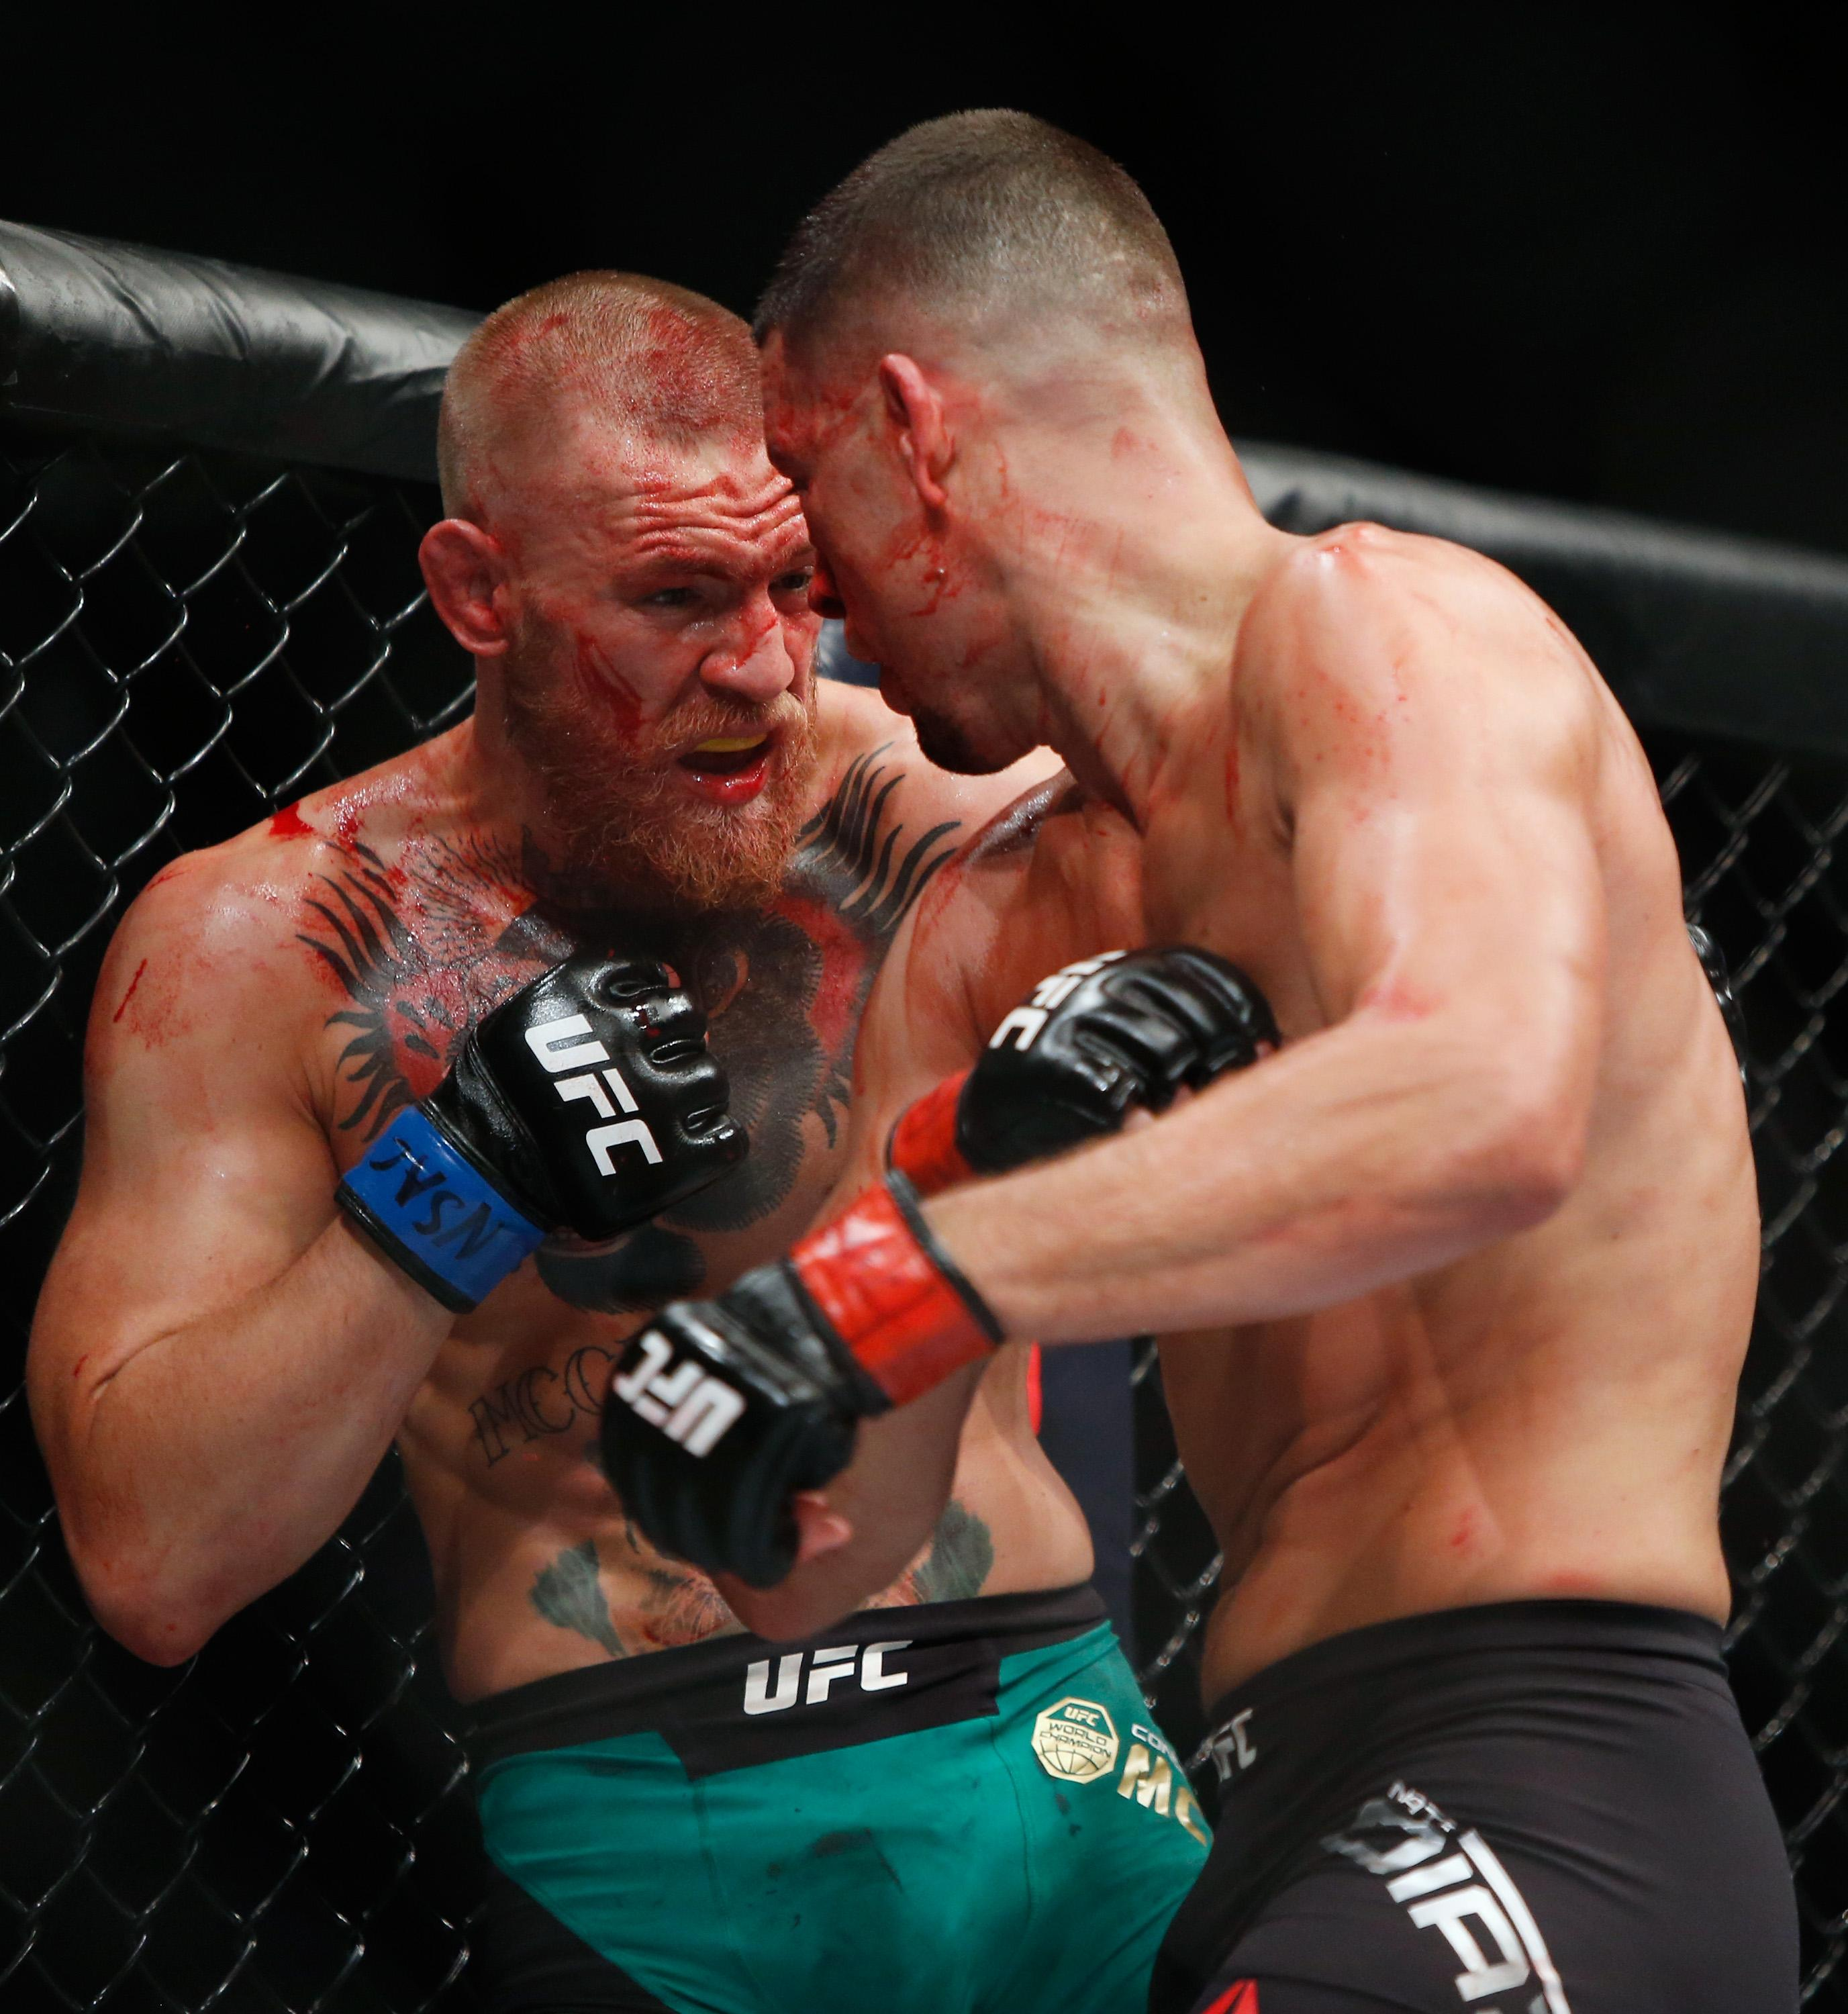 Diaz, 33, hasn't fought since suffering a points defeat against Conor McGregor two years ago